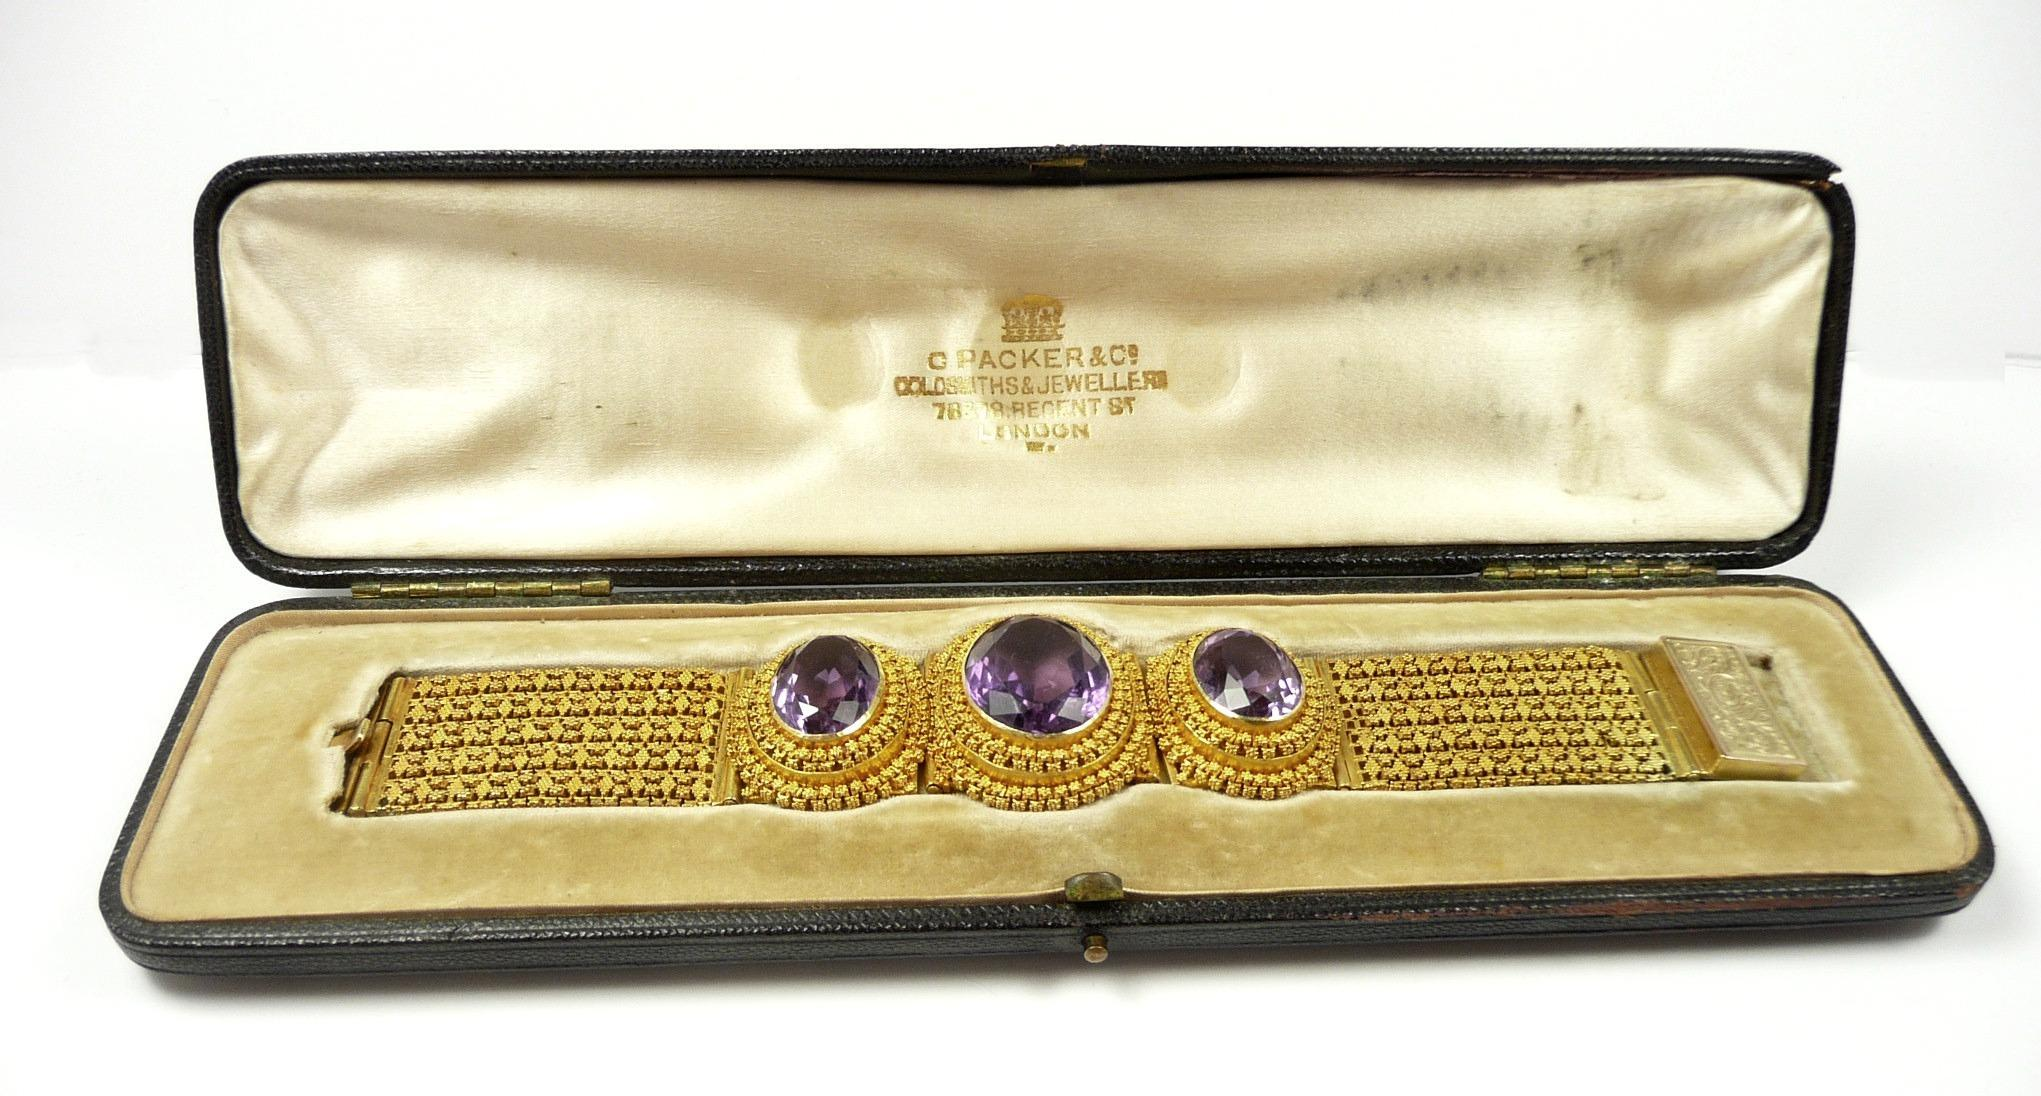 Glamorous Granulated Gold Victorian Amethyst Bracelet by Charles Packer c. 1860